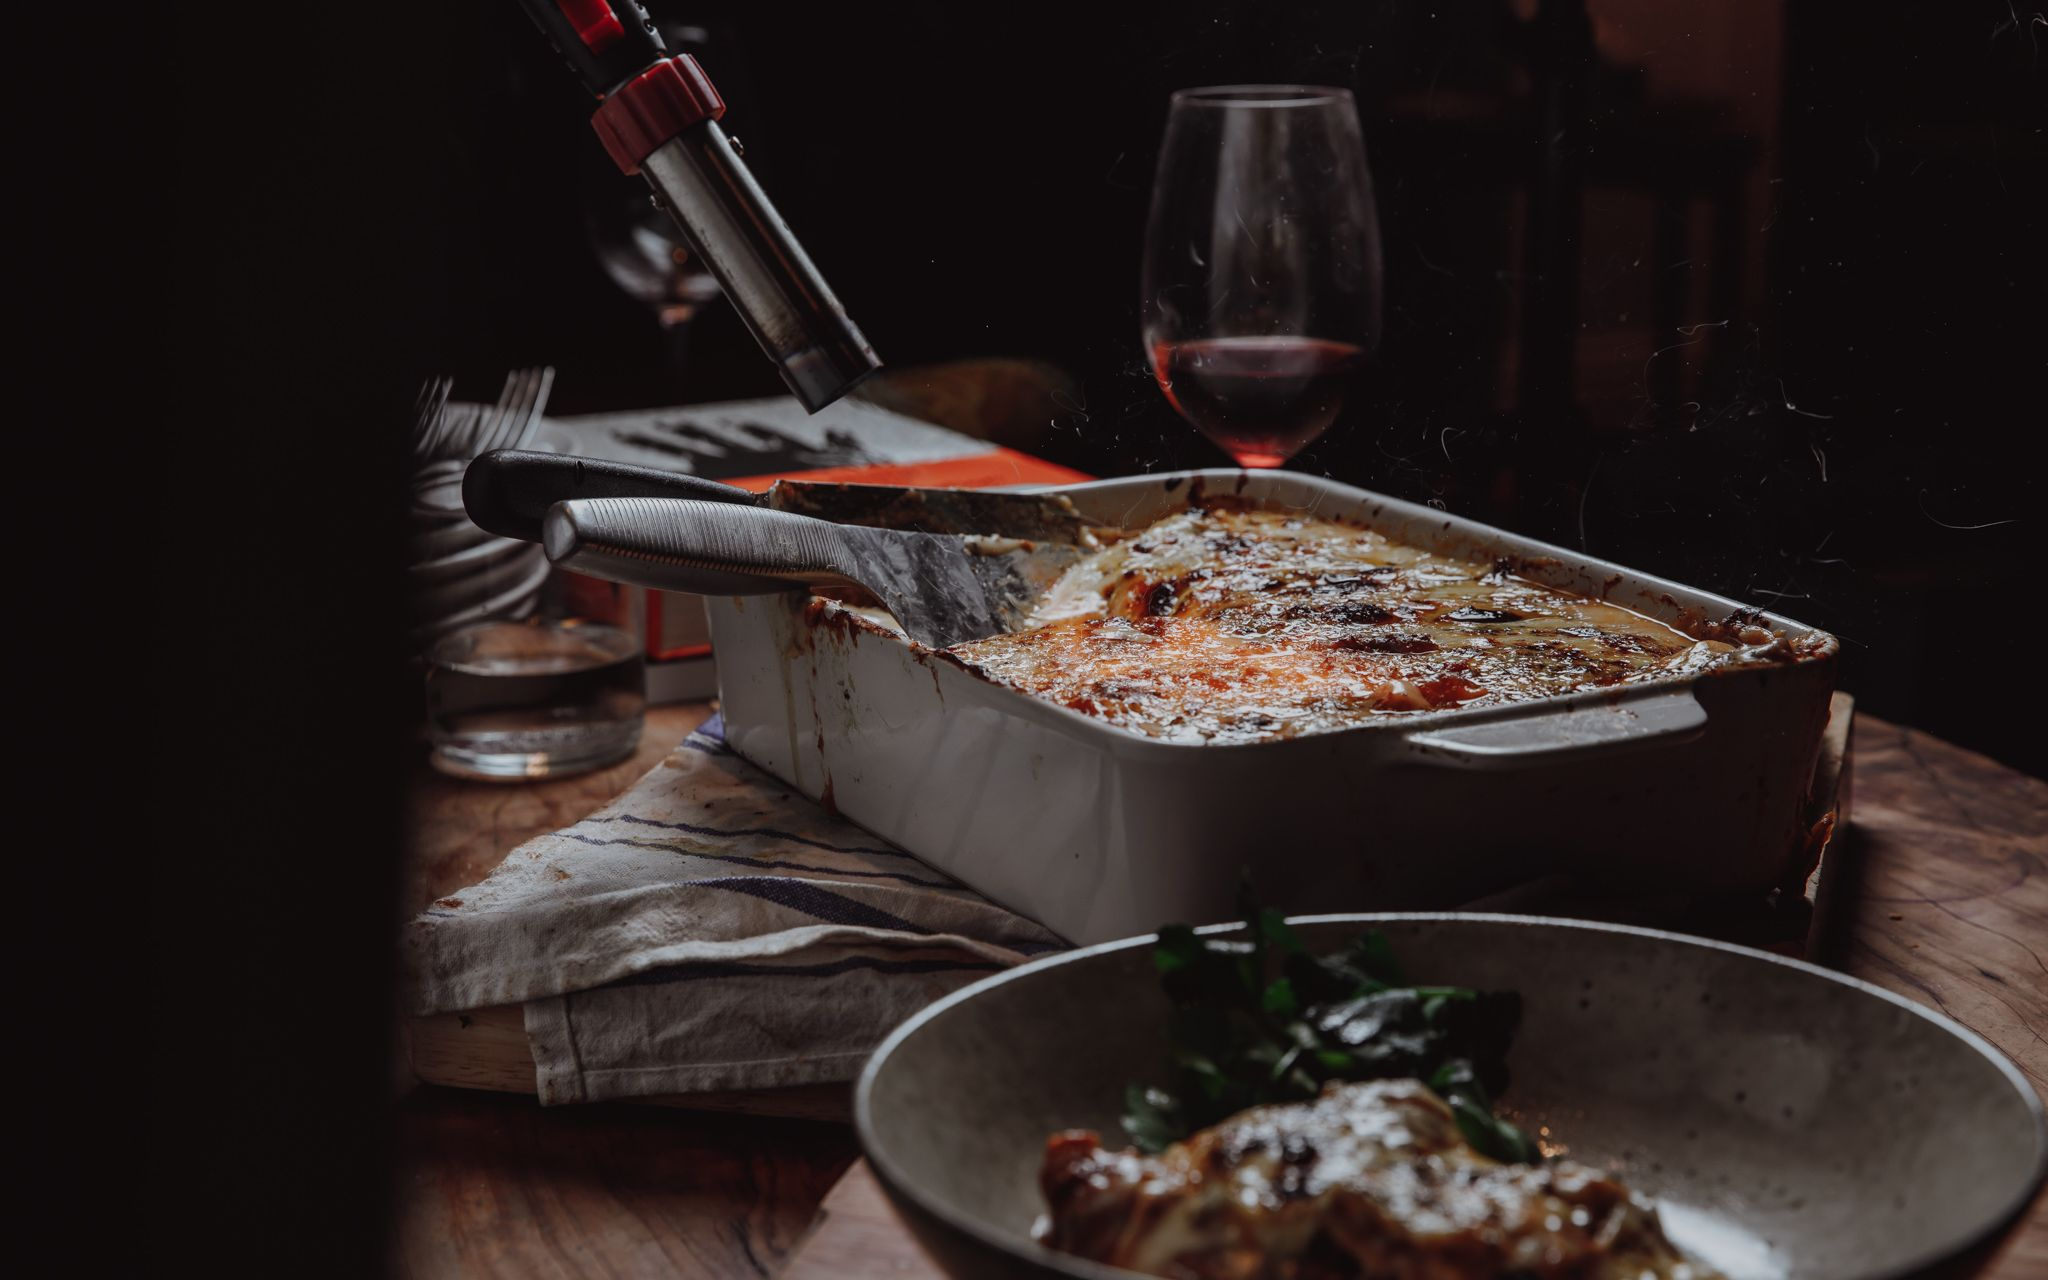 Venison Lasagne ready to be served, alongside a glass of red wine